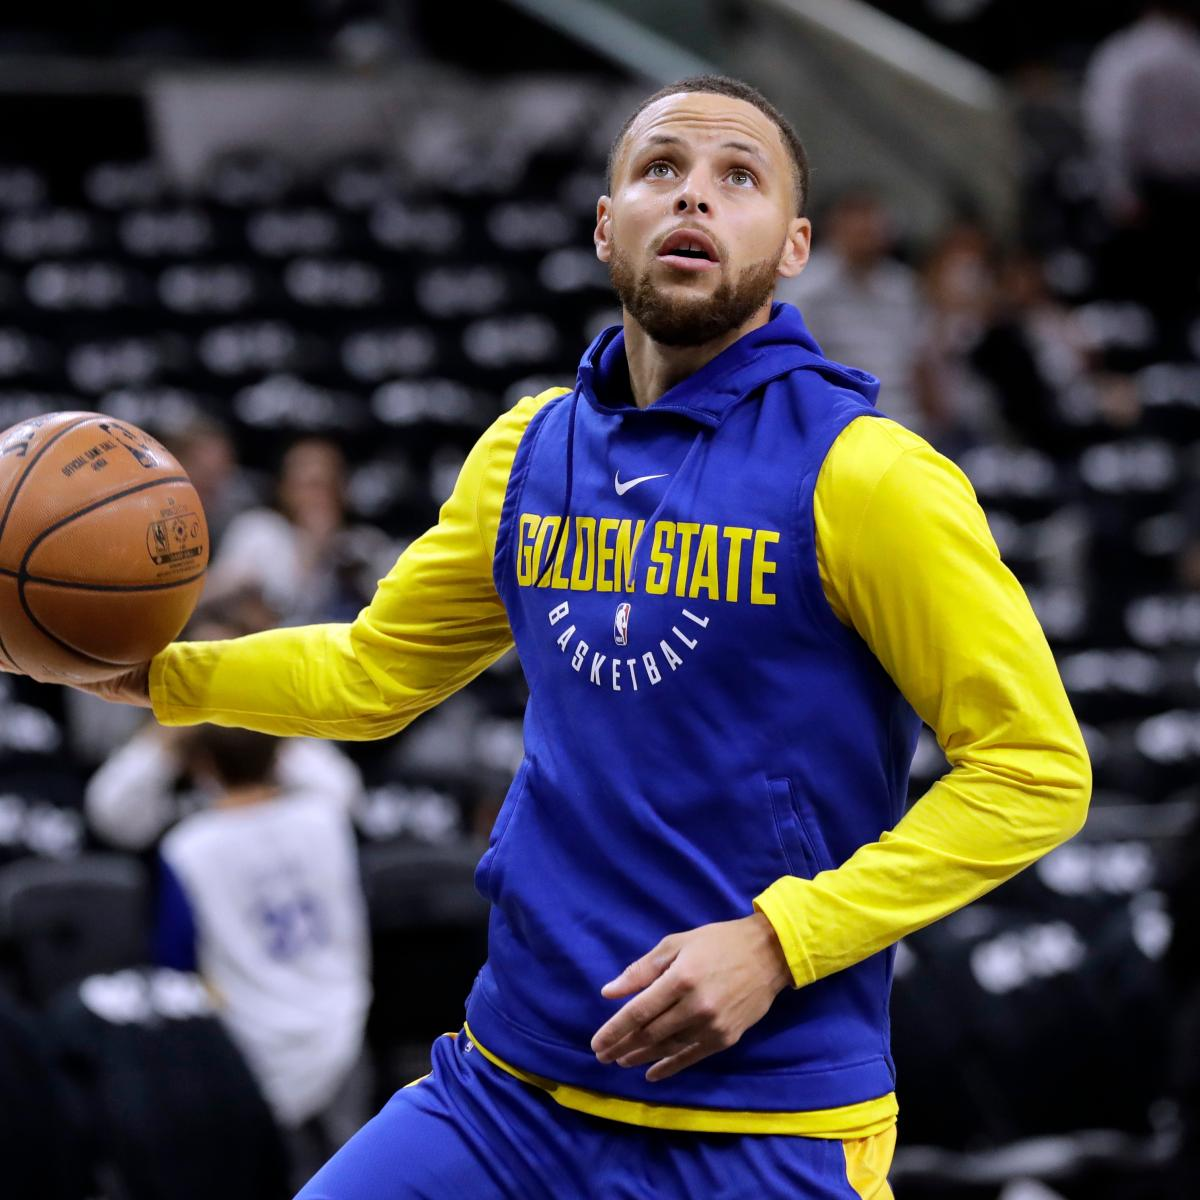 Golden State Warriors Vs Wizards Full Game Highlights: Stephen Curry Questionable For Game 1 Of Warriors Vs